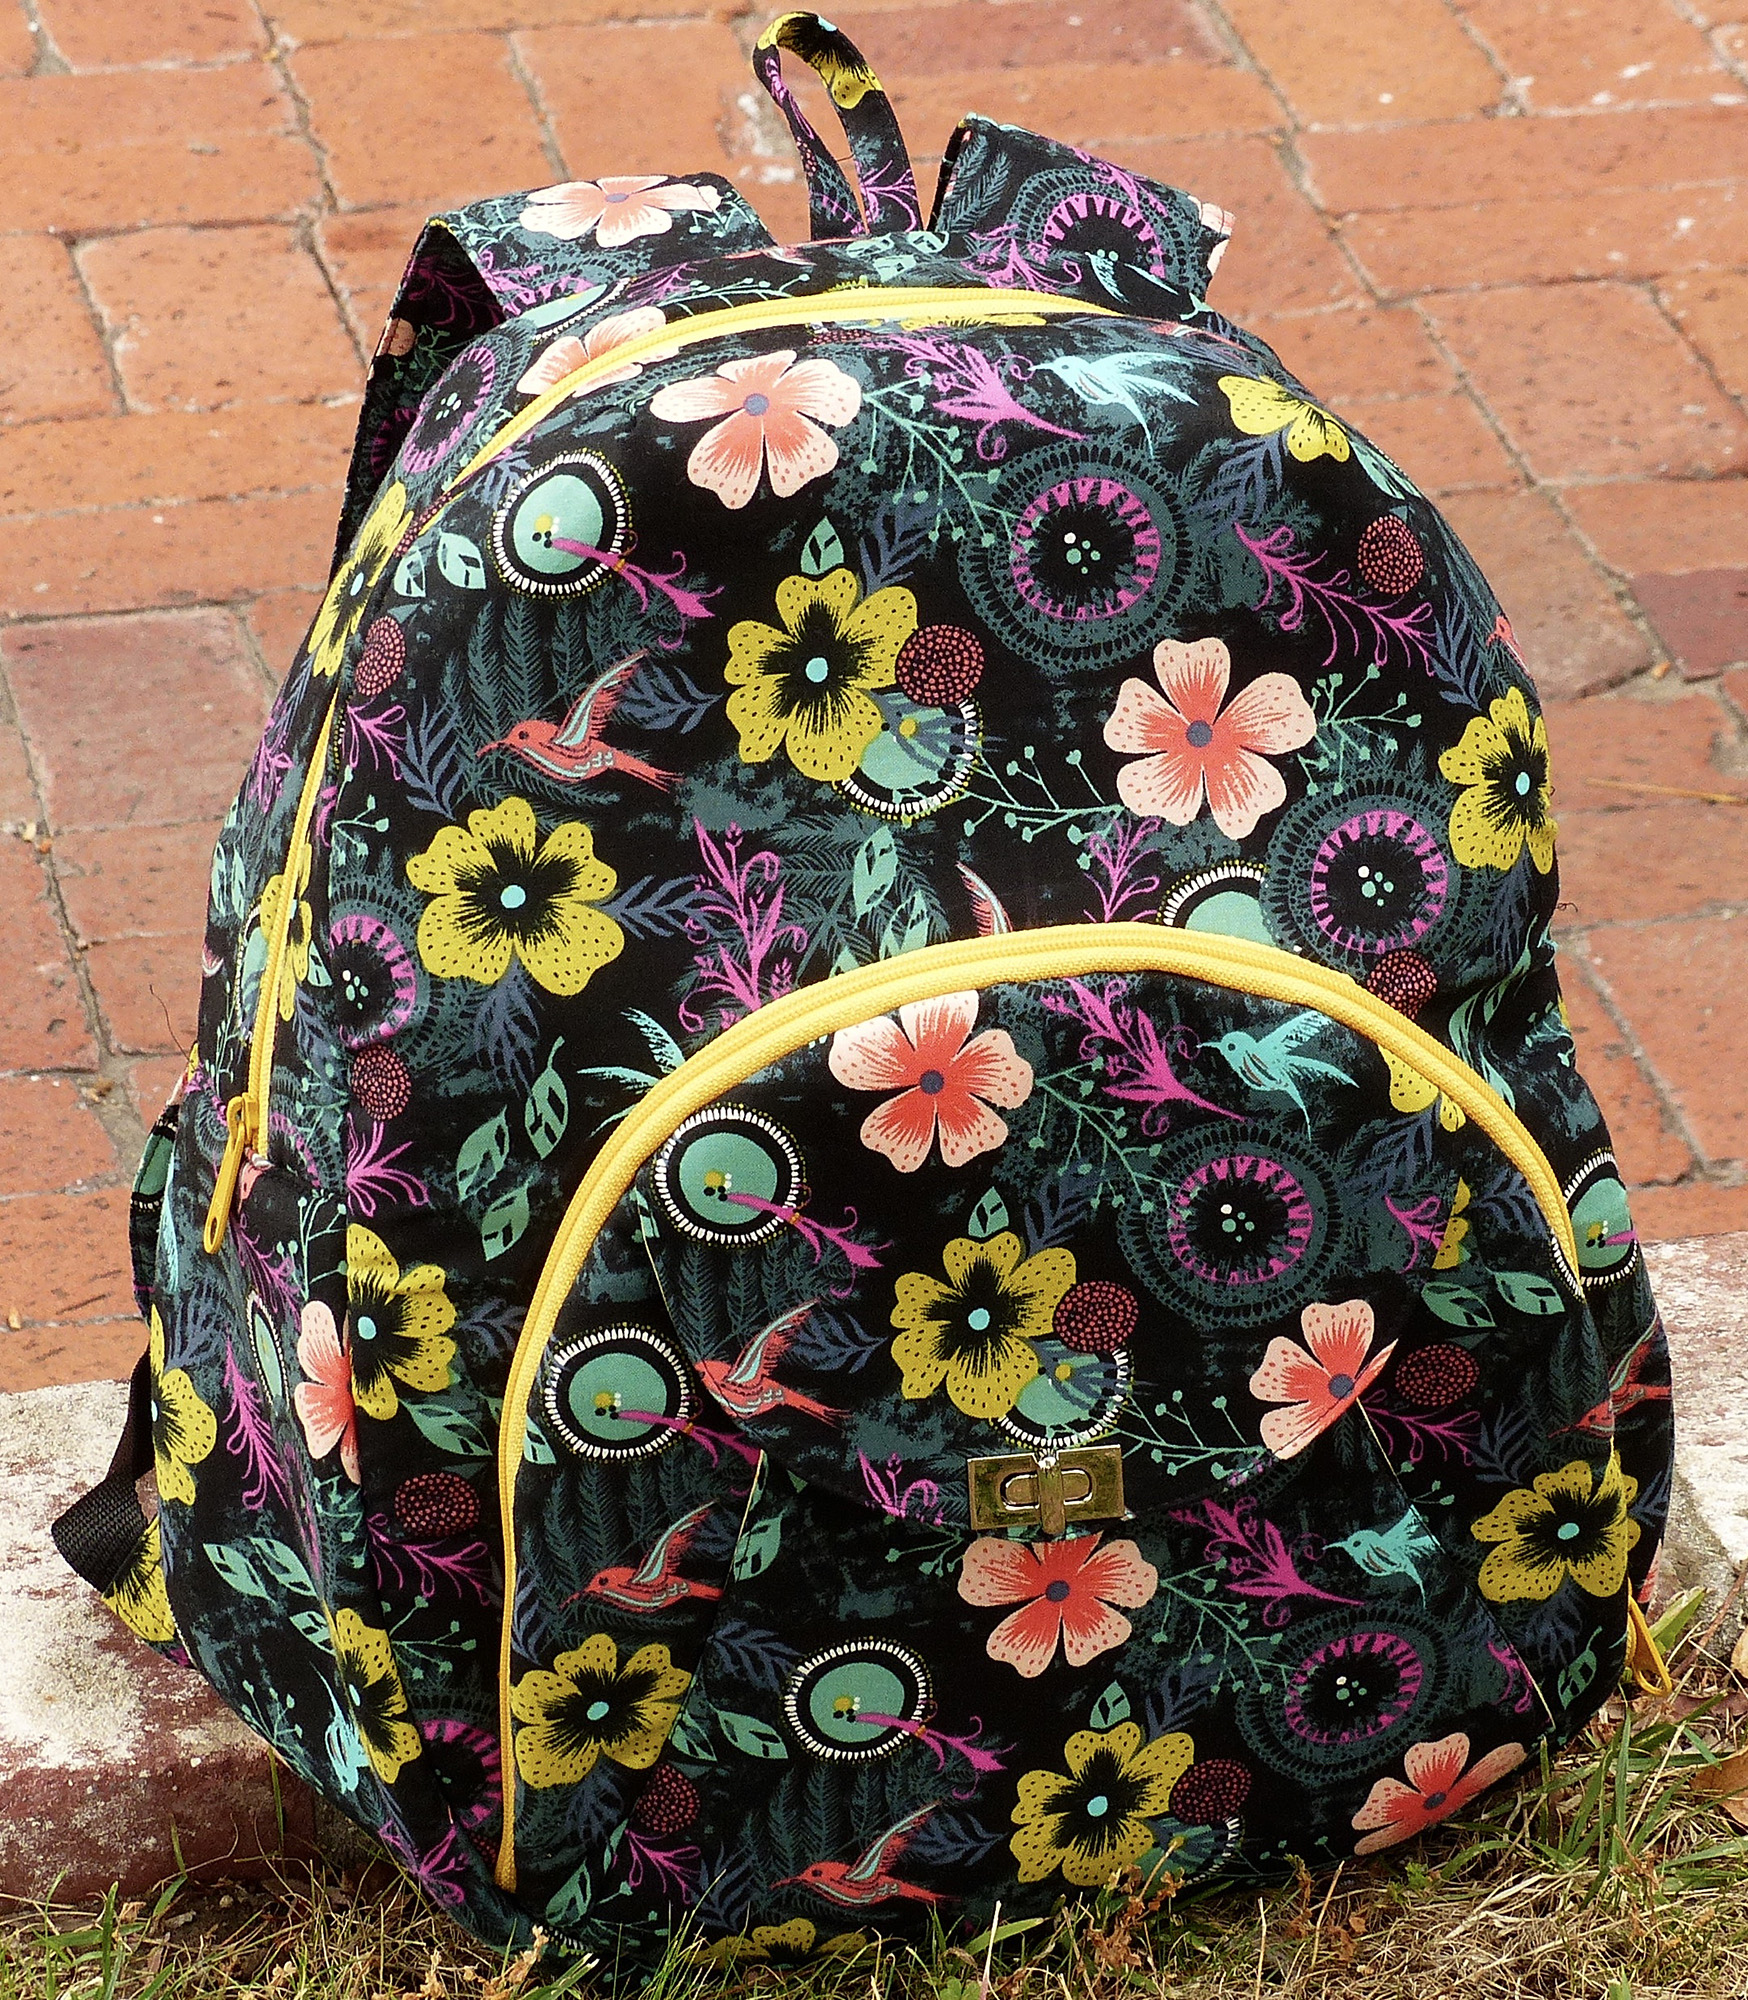 Sew Sweetness Cumberland Backpack, sewn by Leah